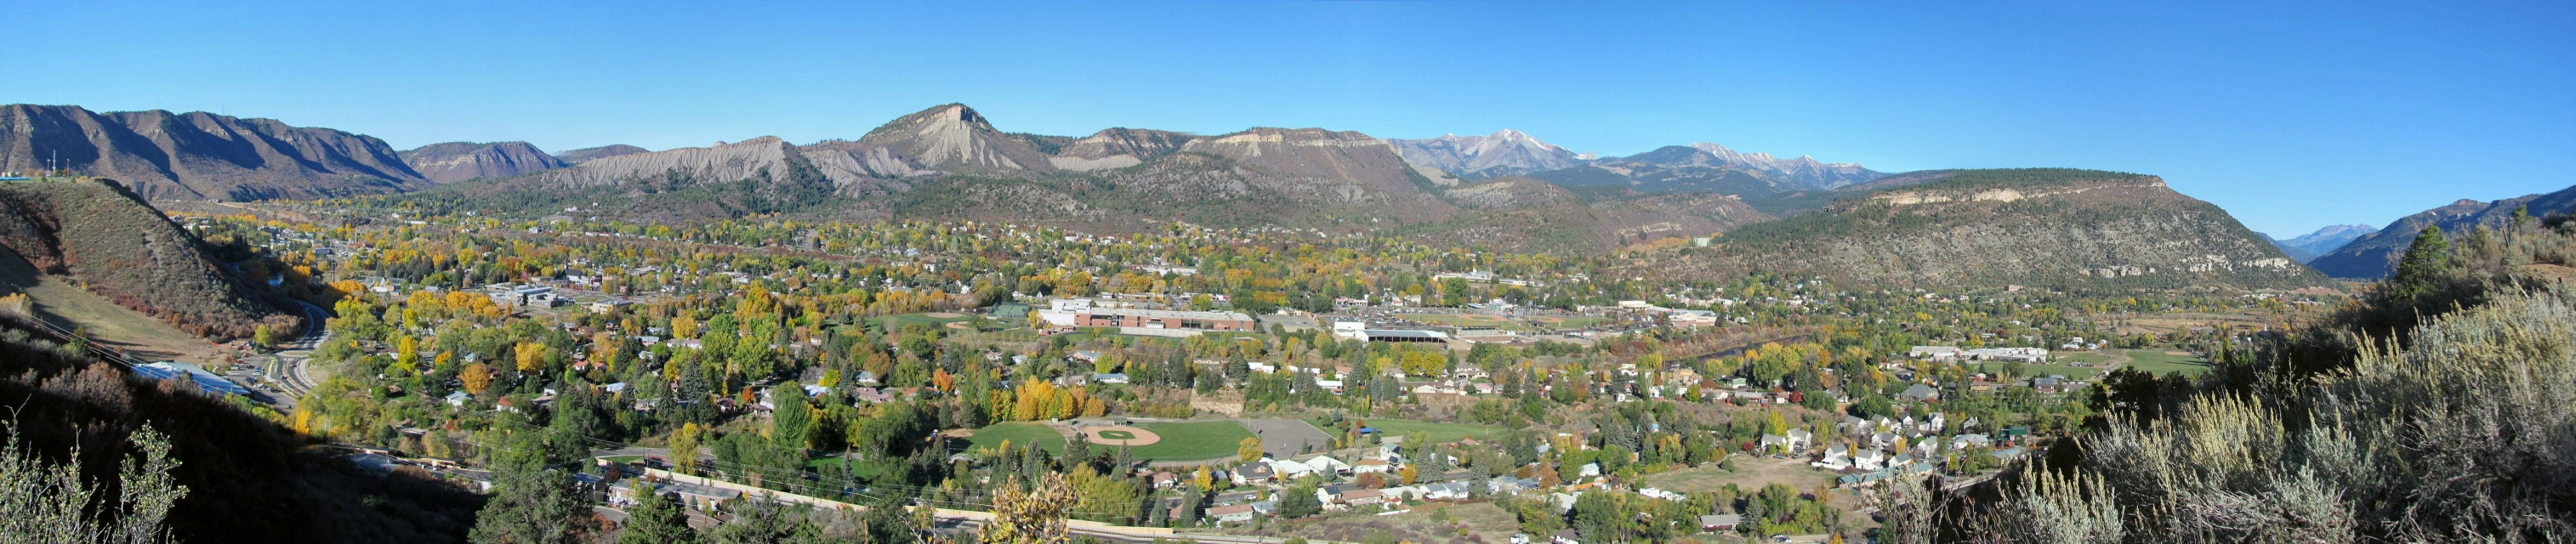 Rim Trail/ Campus Loop